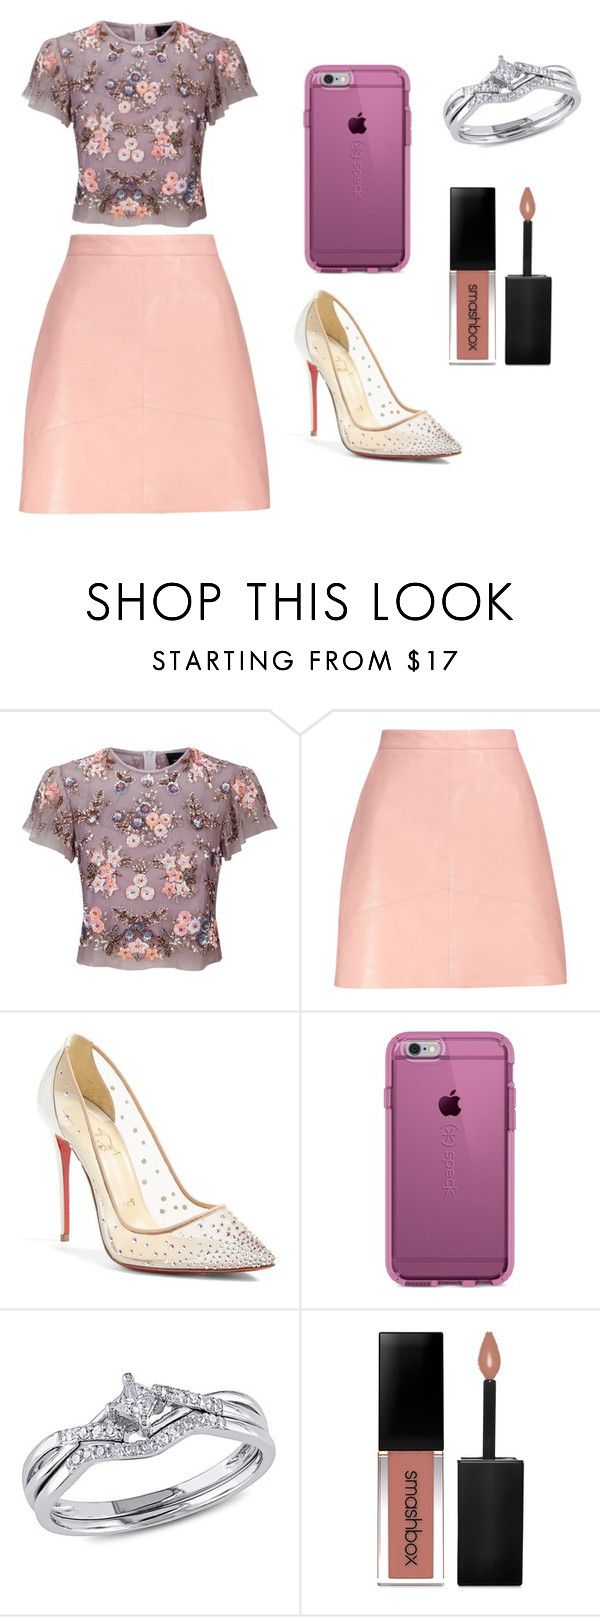 """Sans titre #4150"" by merveille67120 ❤ liked on Polyvore featuring Needle & Thread, Christian Louboutin, Speck and Smashbox"